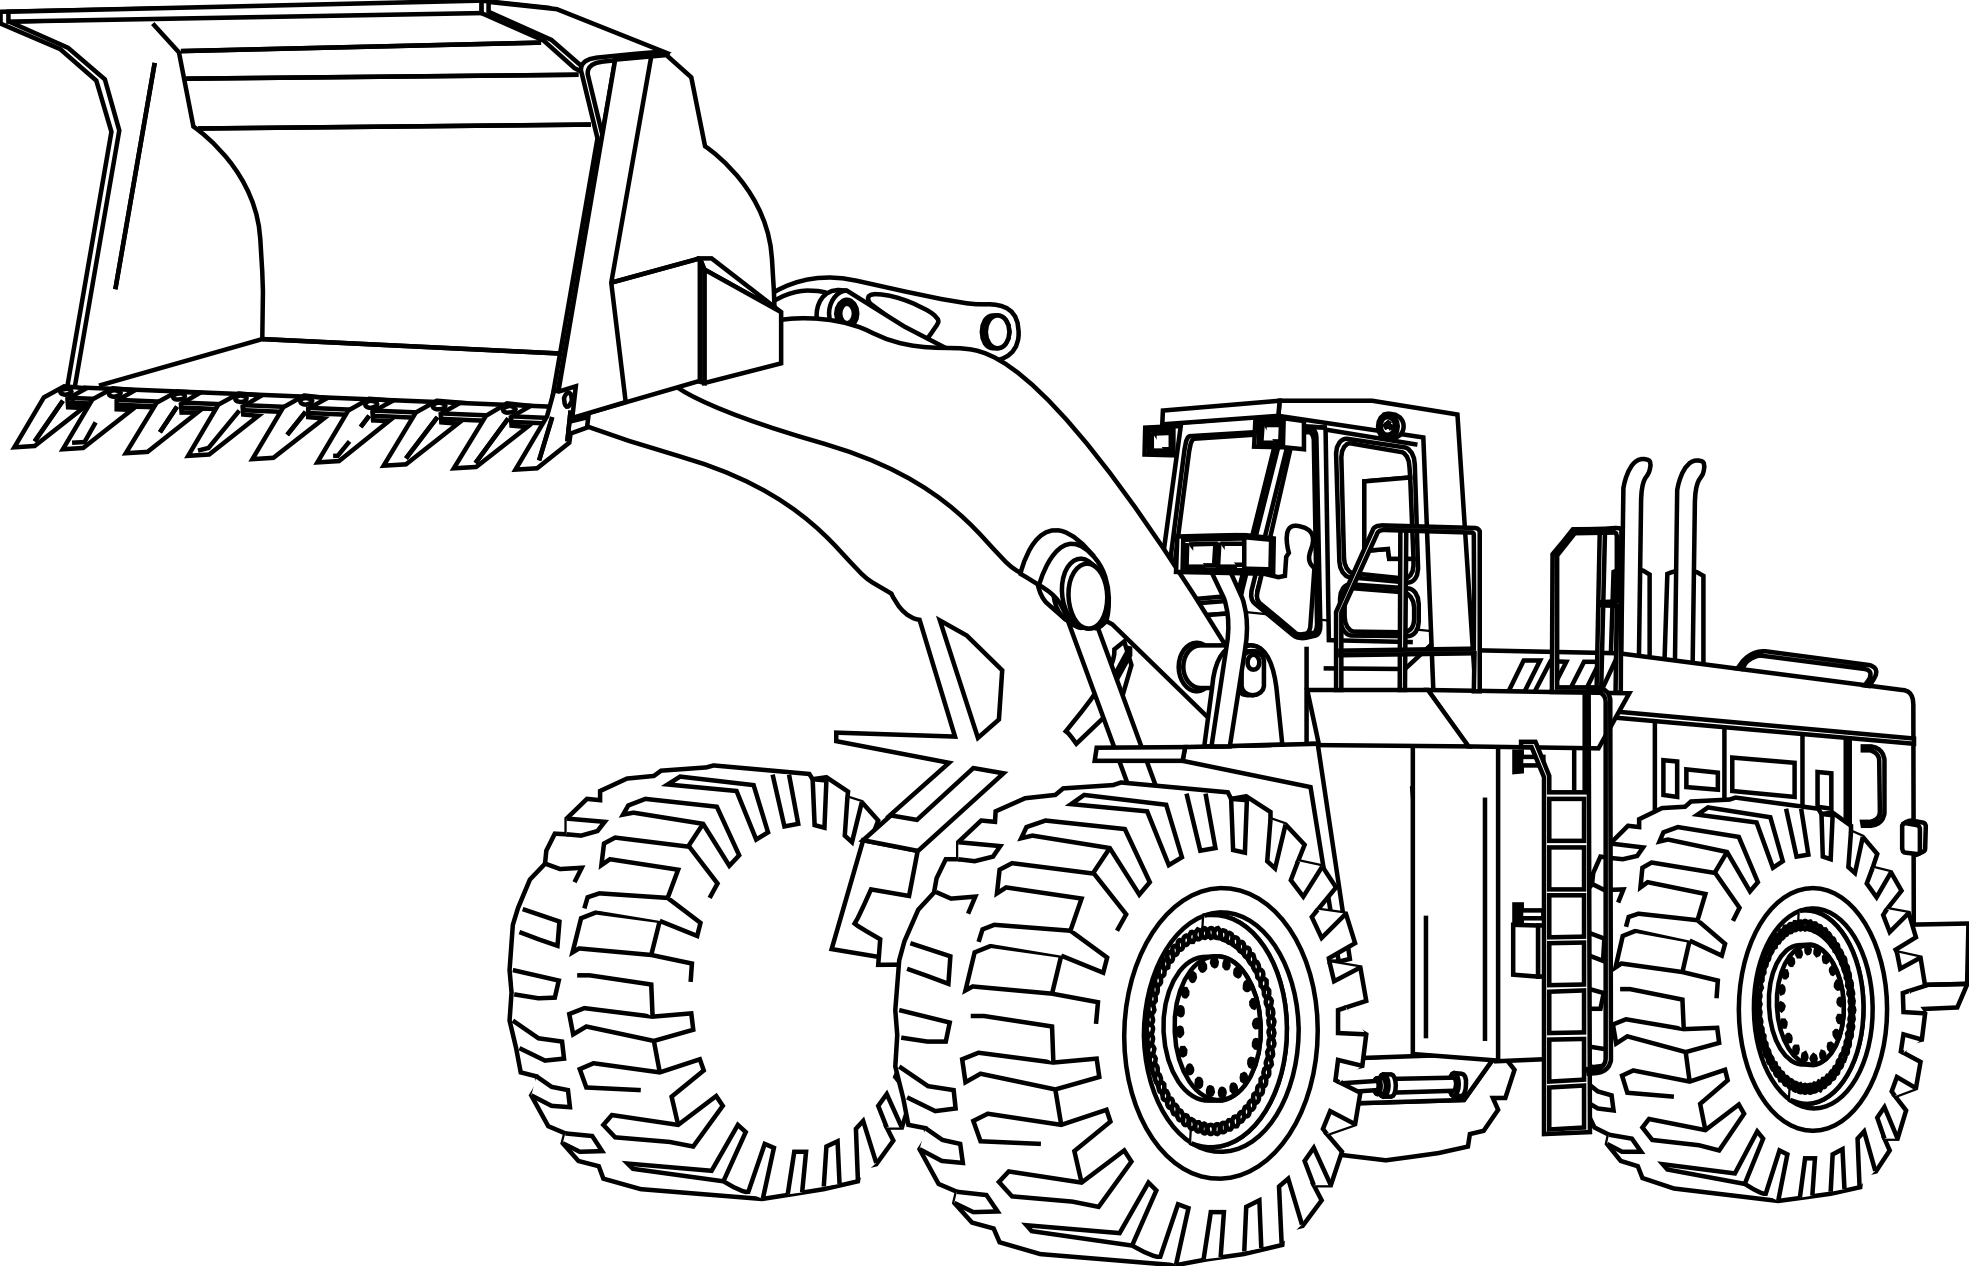 caterpillar machine coloring pages - photo#13